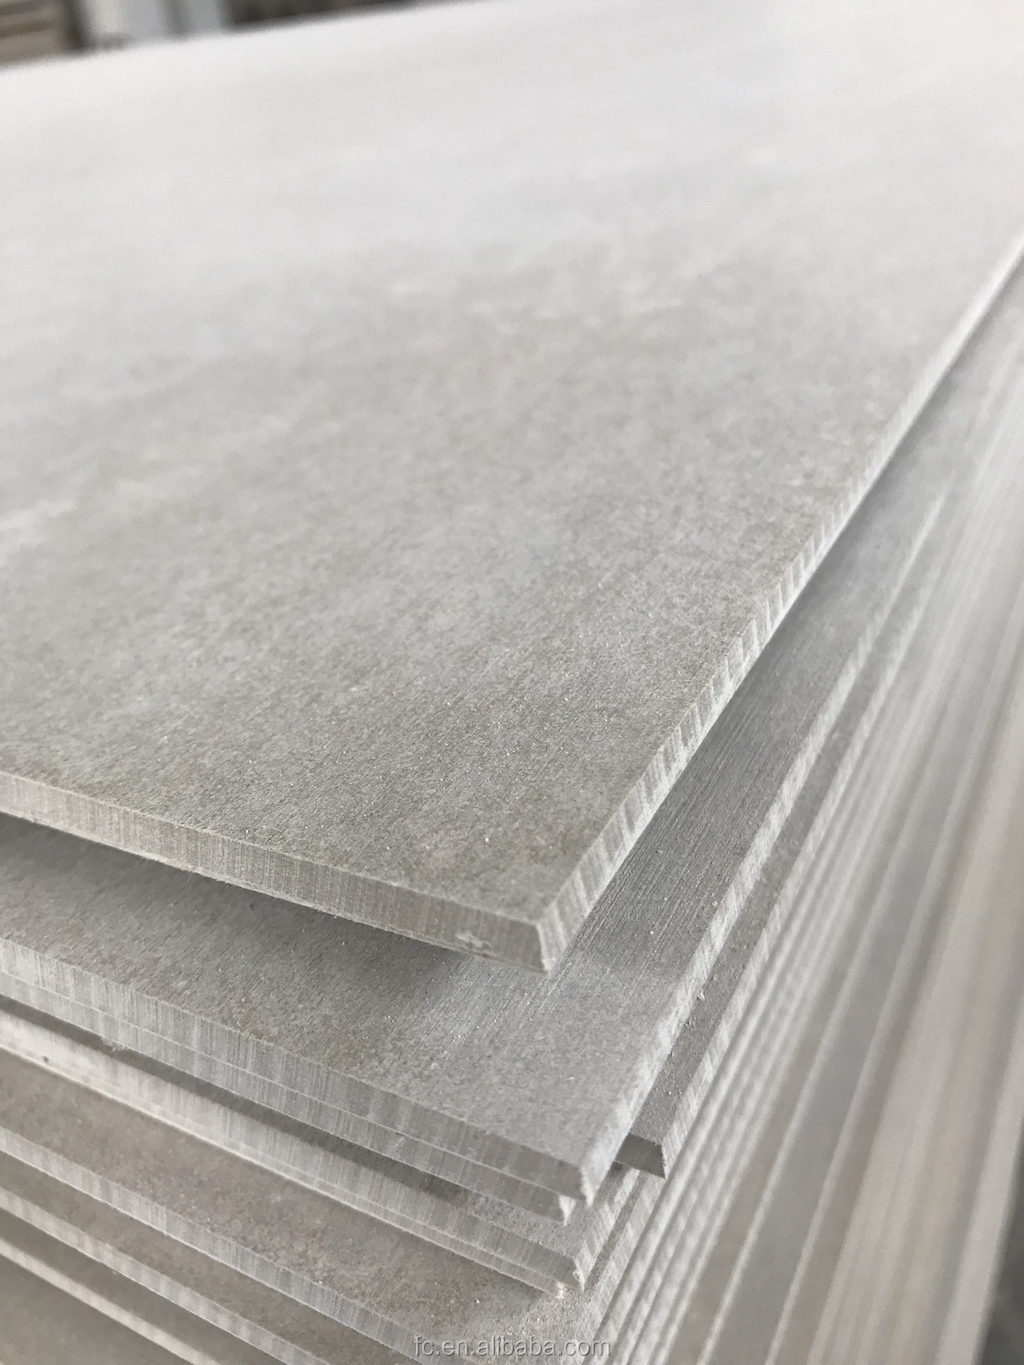 6mm thick ceramic tile underlay fibre cement board for internal tile substrate with australian standard buy ceramic tile underlay fibre cement